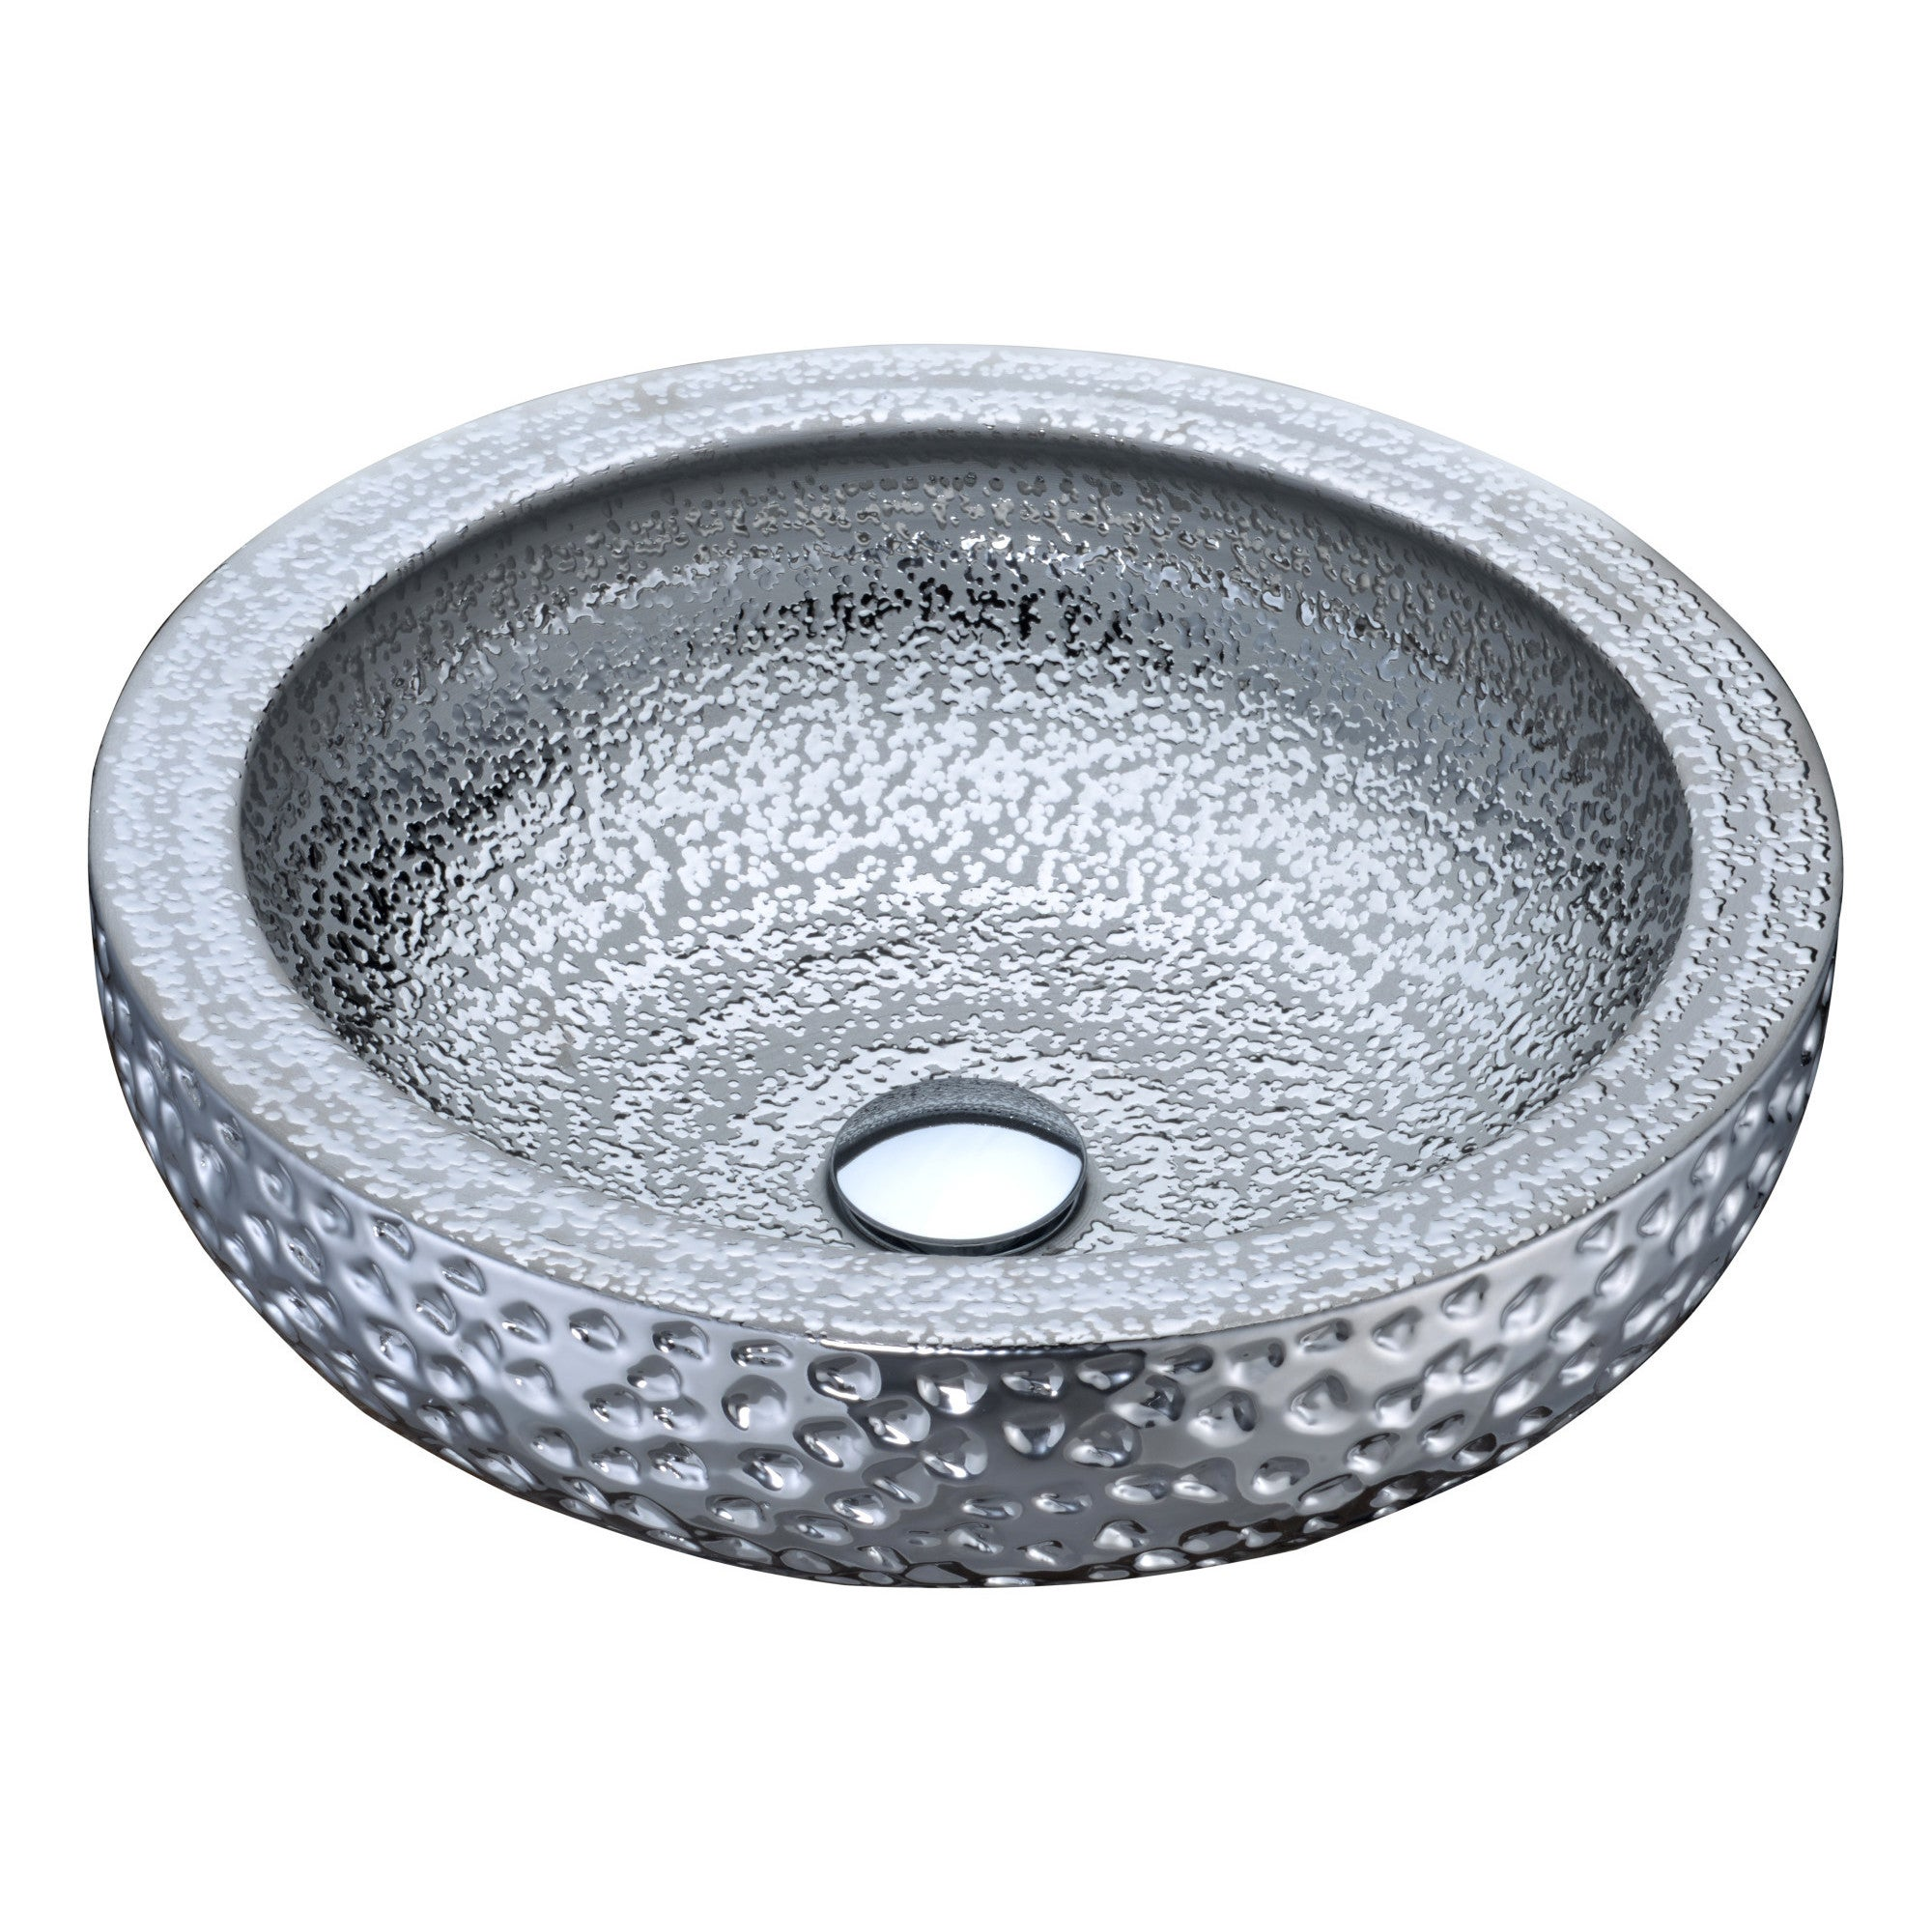 ANZZI Regalia Series Vessel Sink in Speckled Silver - Free Shipping ...